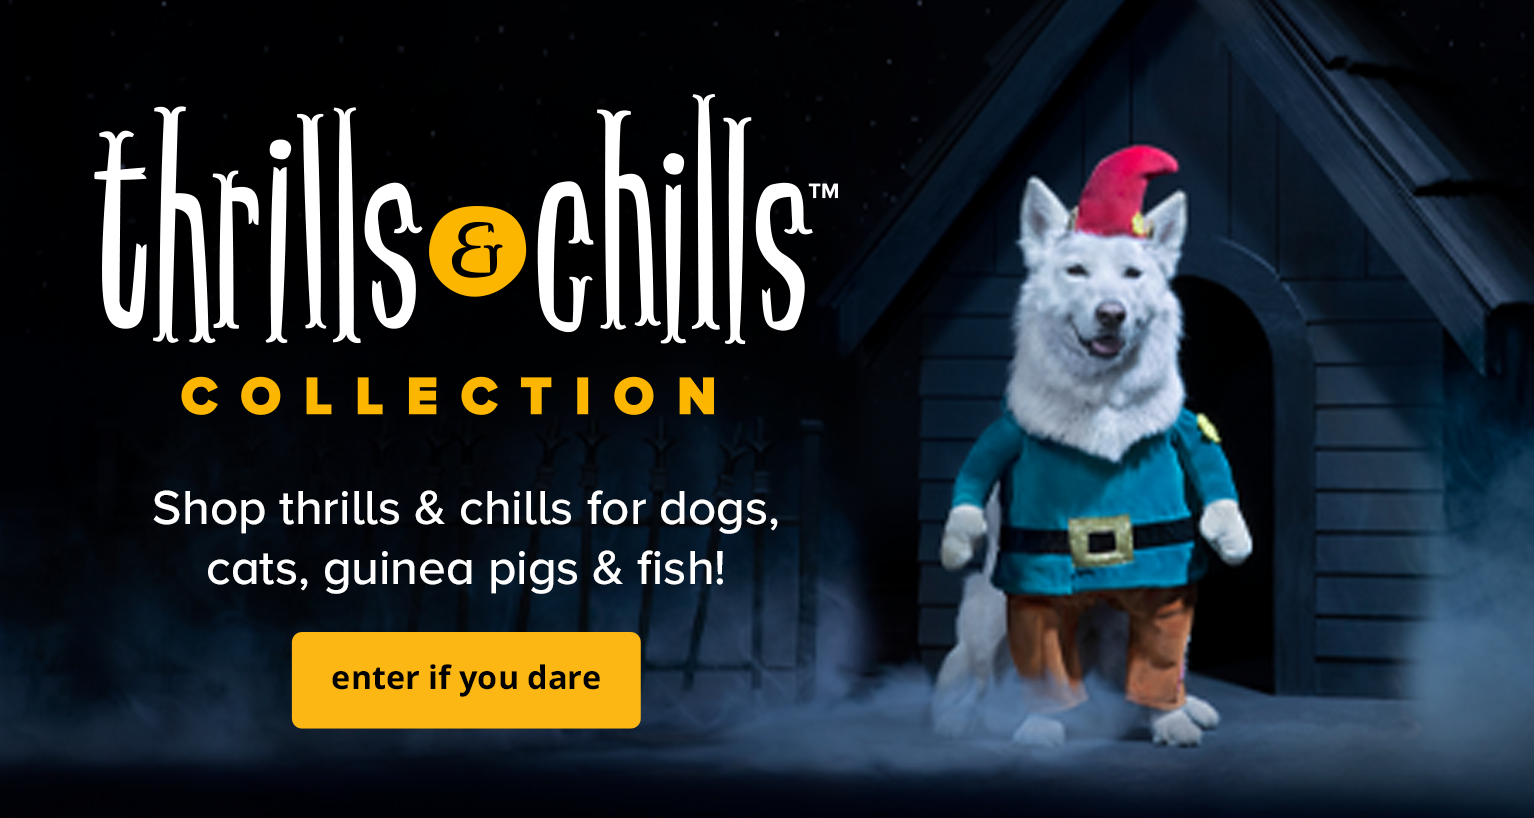 Shop thrills & chills for dogs, guinea pigs and more!